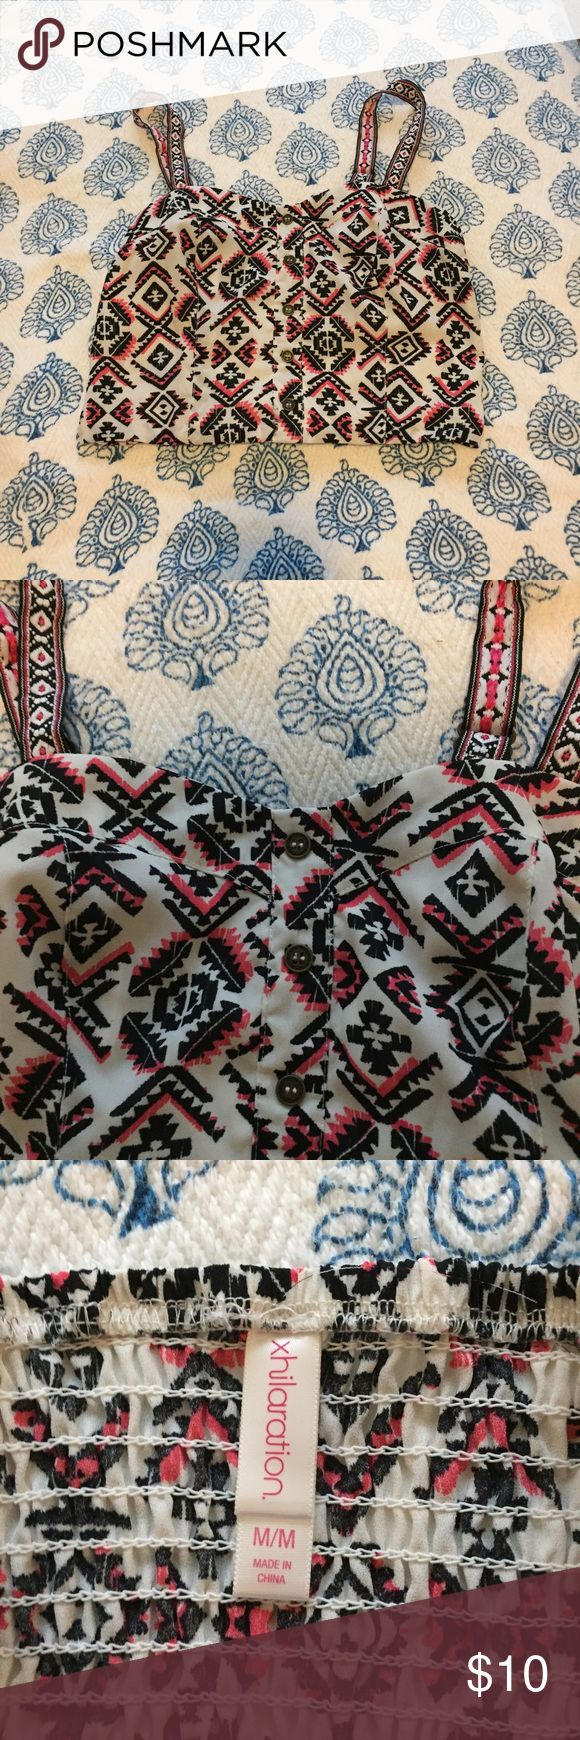 XHILERATION White Patterned Crop atop Flirty very cropped top. Great for a summer outfit-- light colored jeggings and sandals. Perfect Condition. The buttons are just for decoration. Stretches on back but not on breasts. SMOKE FREE/PET FREE HOME. Xhilaration Tops Crop Tops